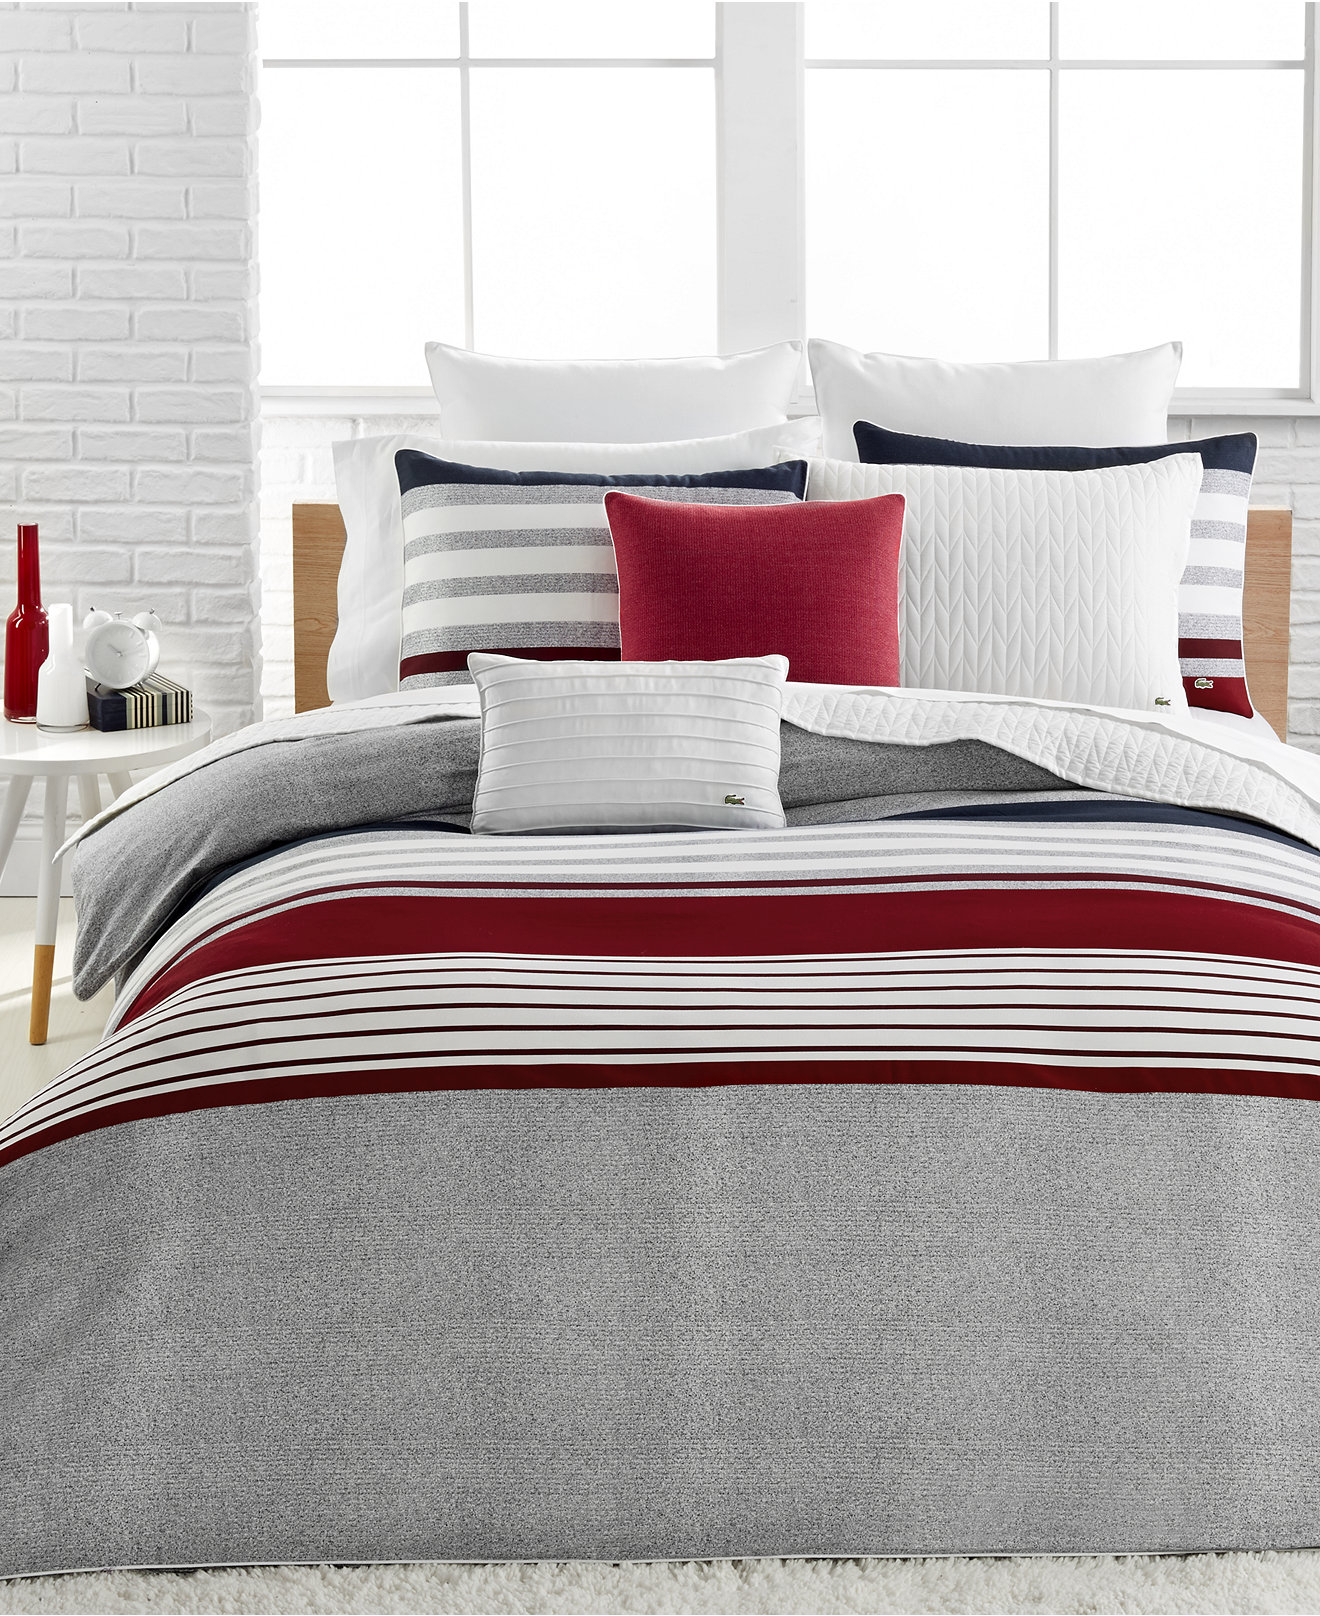 red bed linen duvet covers  sweetgalas - lacoste home auckland red duvet cover sets bedding collections